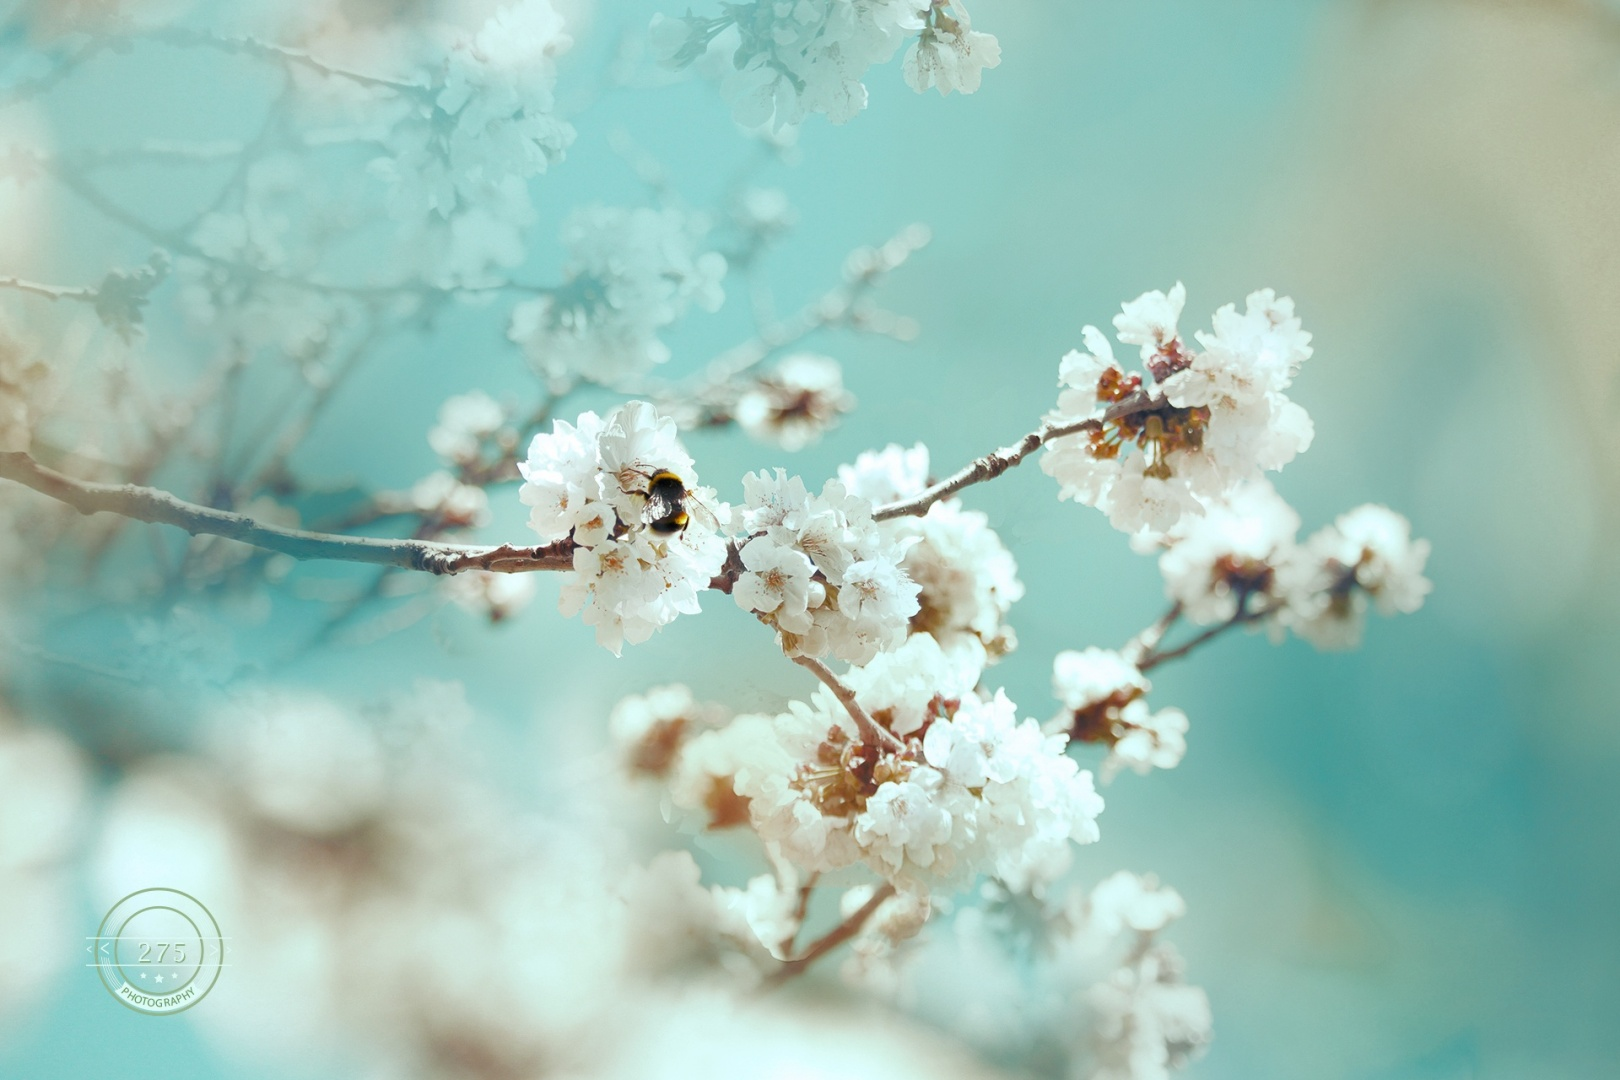 © 275Photography - fuubutsushi (a sense of spring)